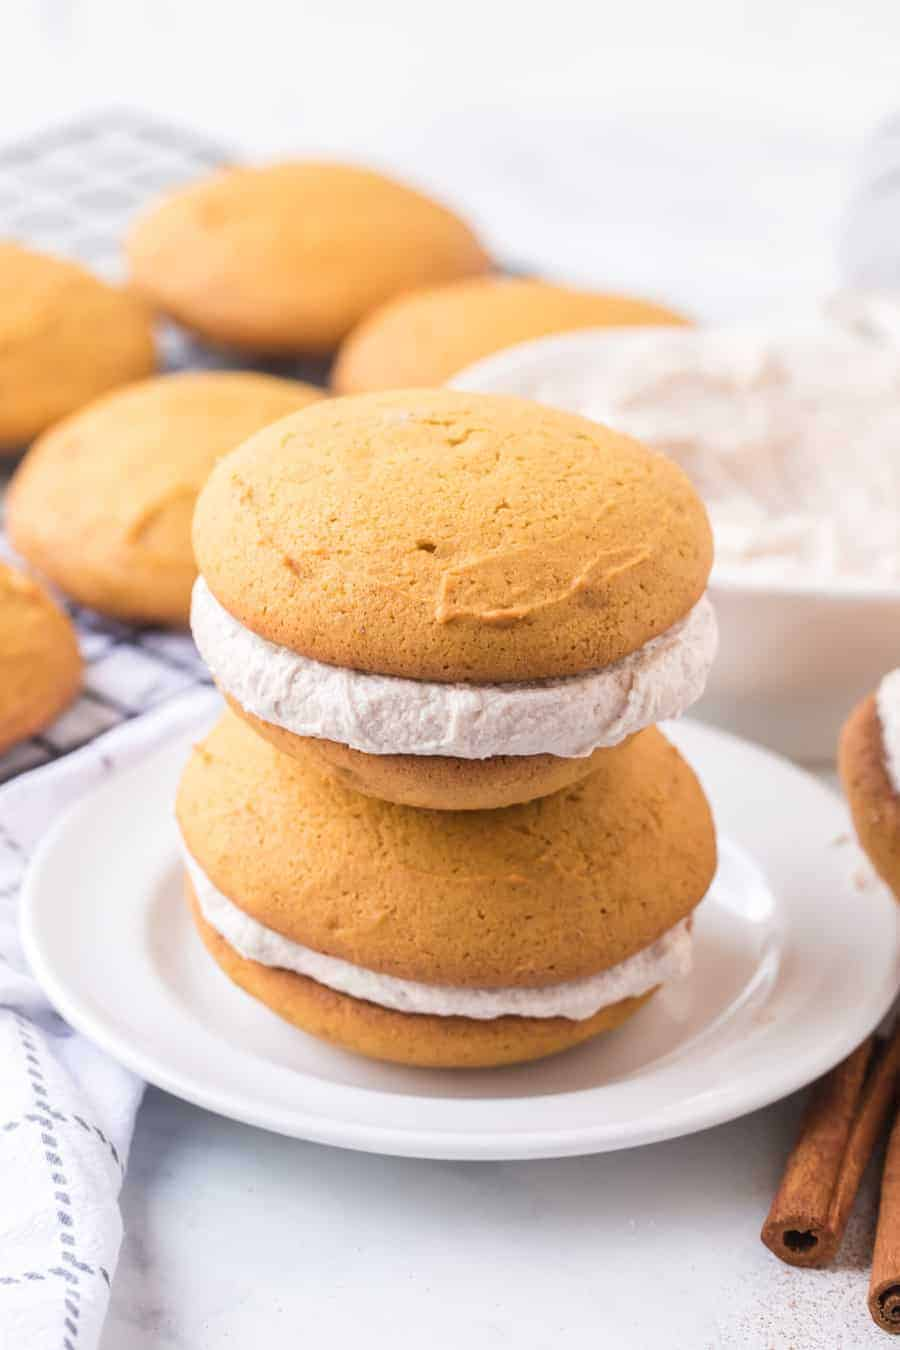 Brace yourselves for bites of heaven -- these pumpkin whoopie pies with whipped cinnamon filling are the perfectly sweet and soft, cream-filled cookie sandwiches you need this fall... and probably year-round, too. #whoopiepie #whoopiepierecipe #pumpkinwhoopiepie #pumpkin #pumkpindessert #pumpkinrecipe